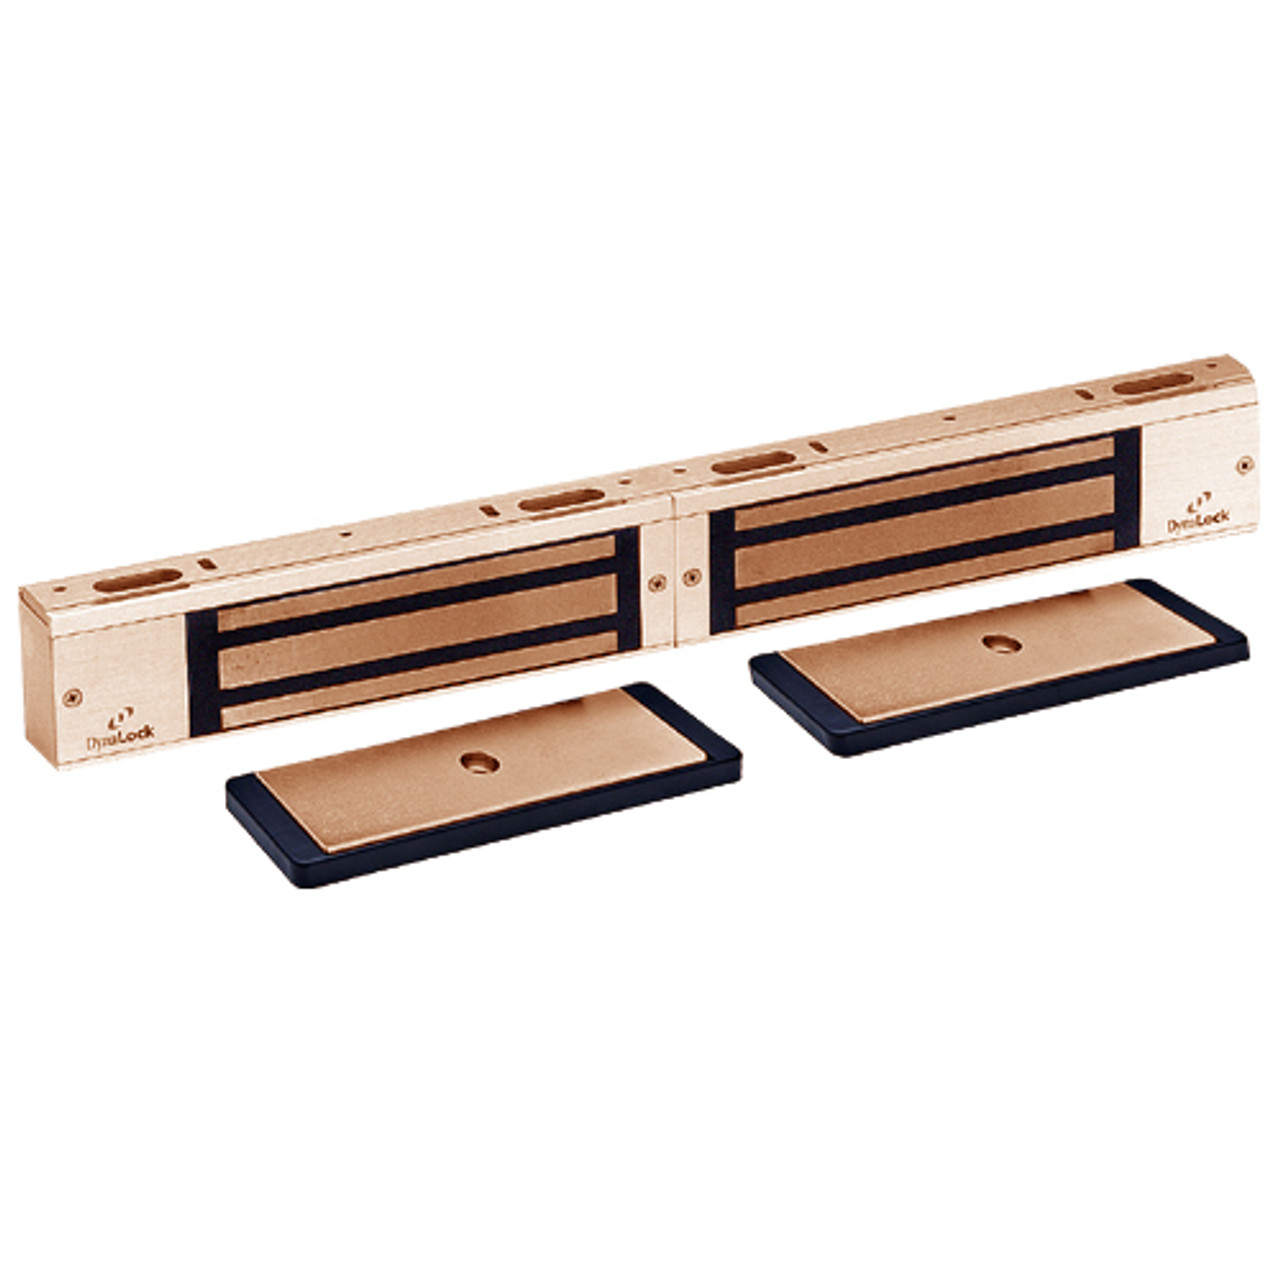 3002TJ32-US10-VOP2 DynaLock 3000 Series 1500 LBs Double Electromagnetic Lock for Inswing Door with Value Option Package in Satin Bronze